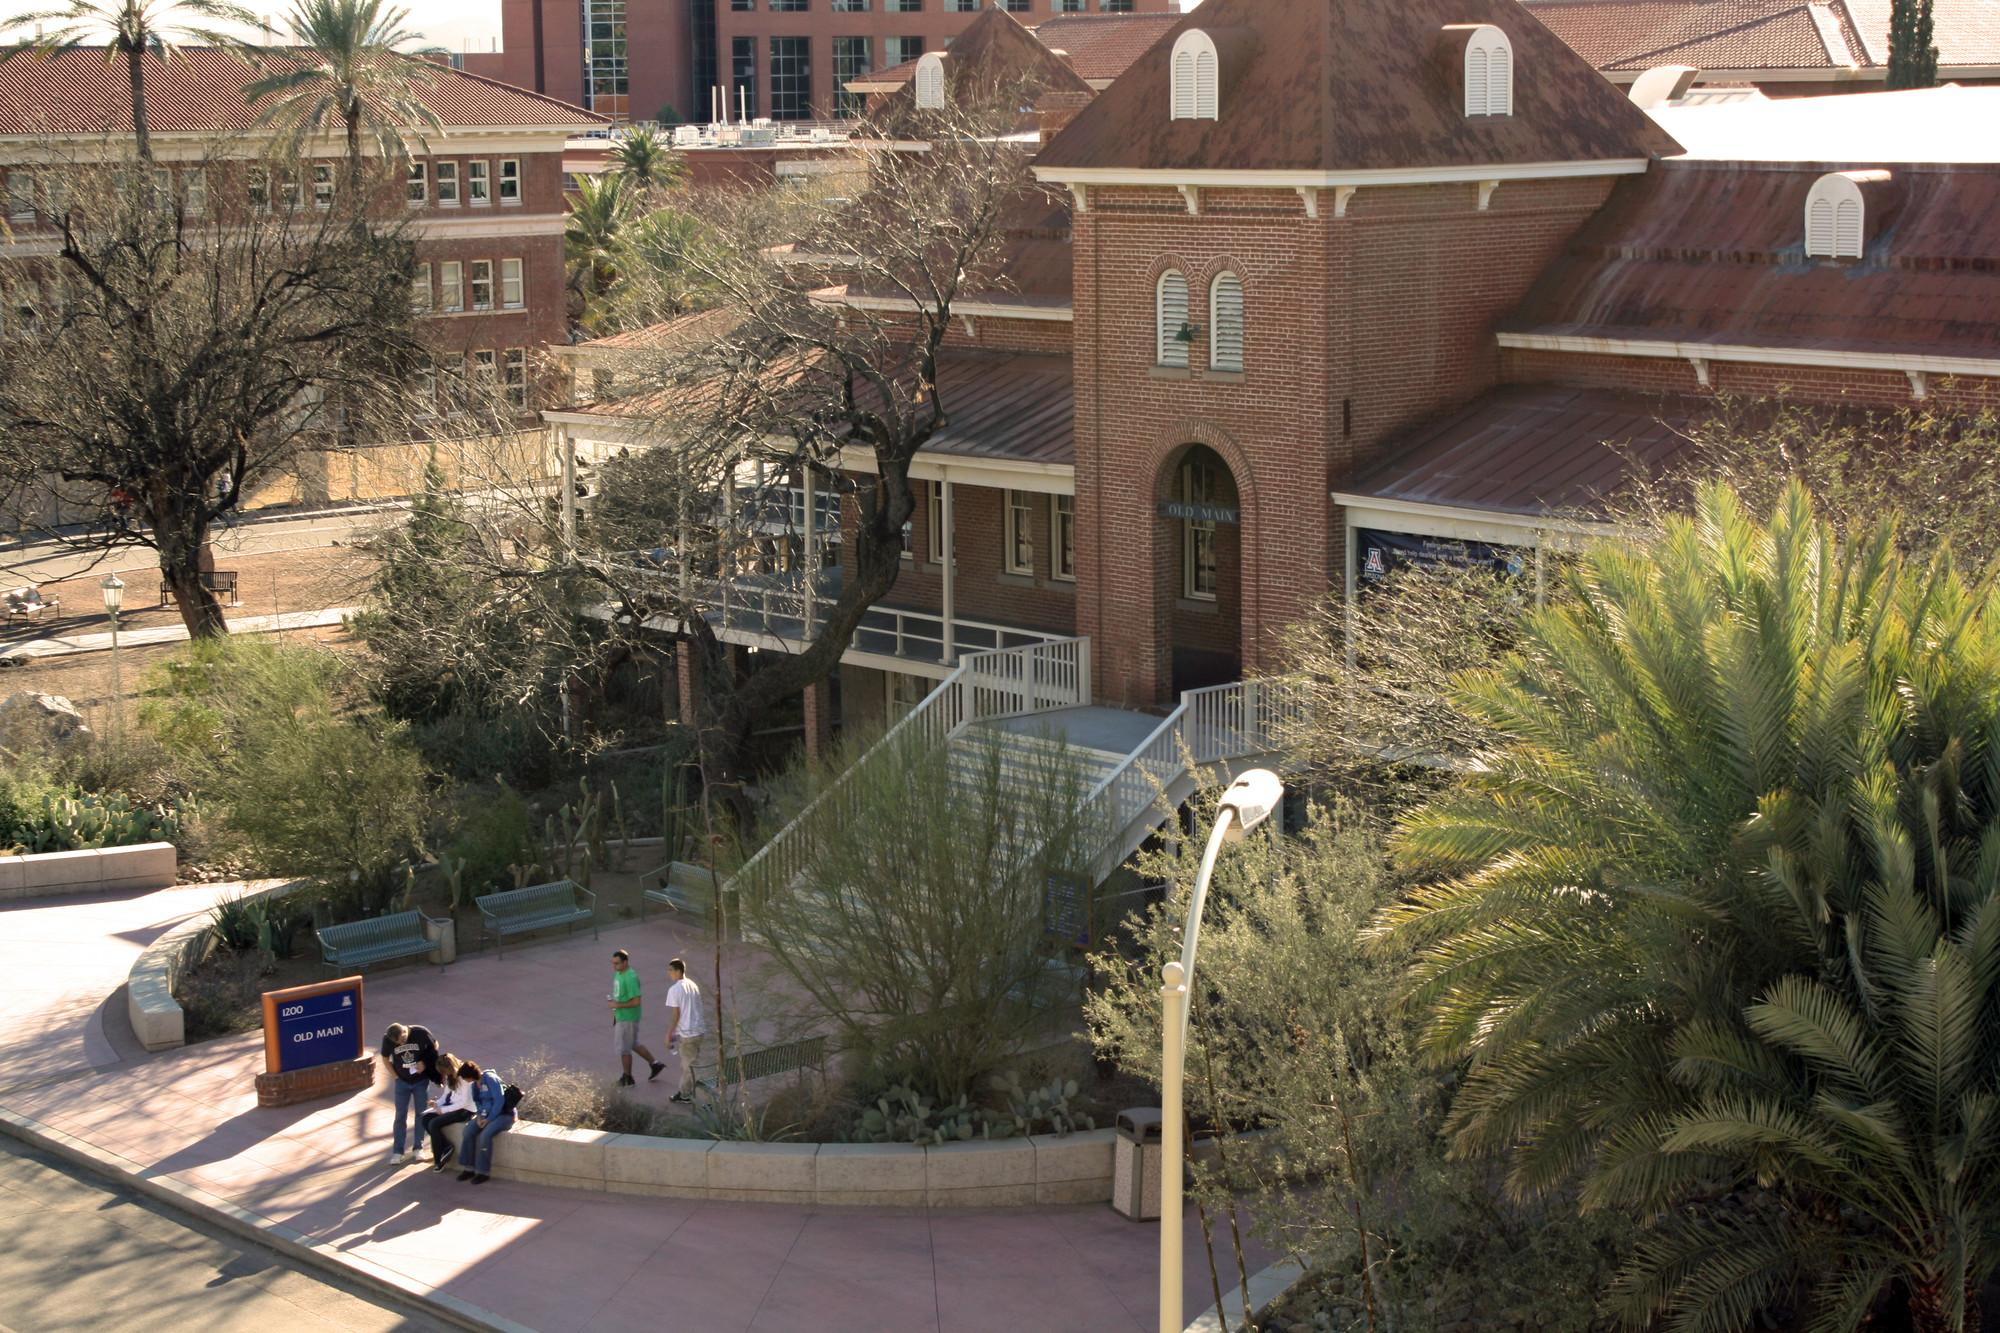 Constructed in 1891, the University of Arizona's oldest building has stood while the campus's more modern buildings rose around it over the years.